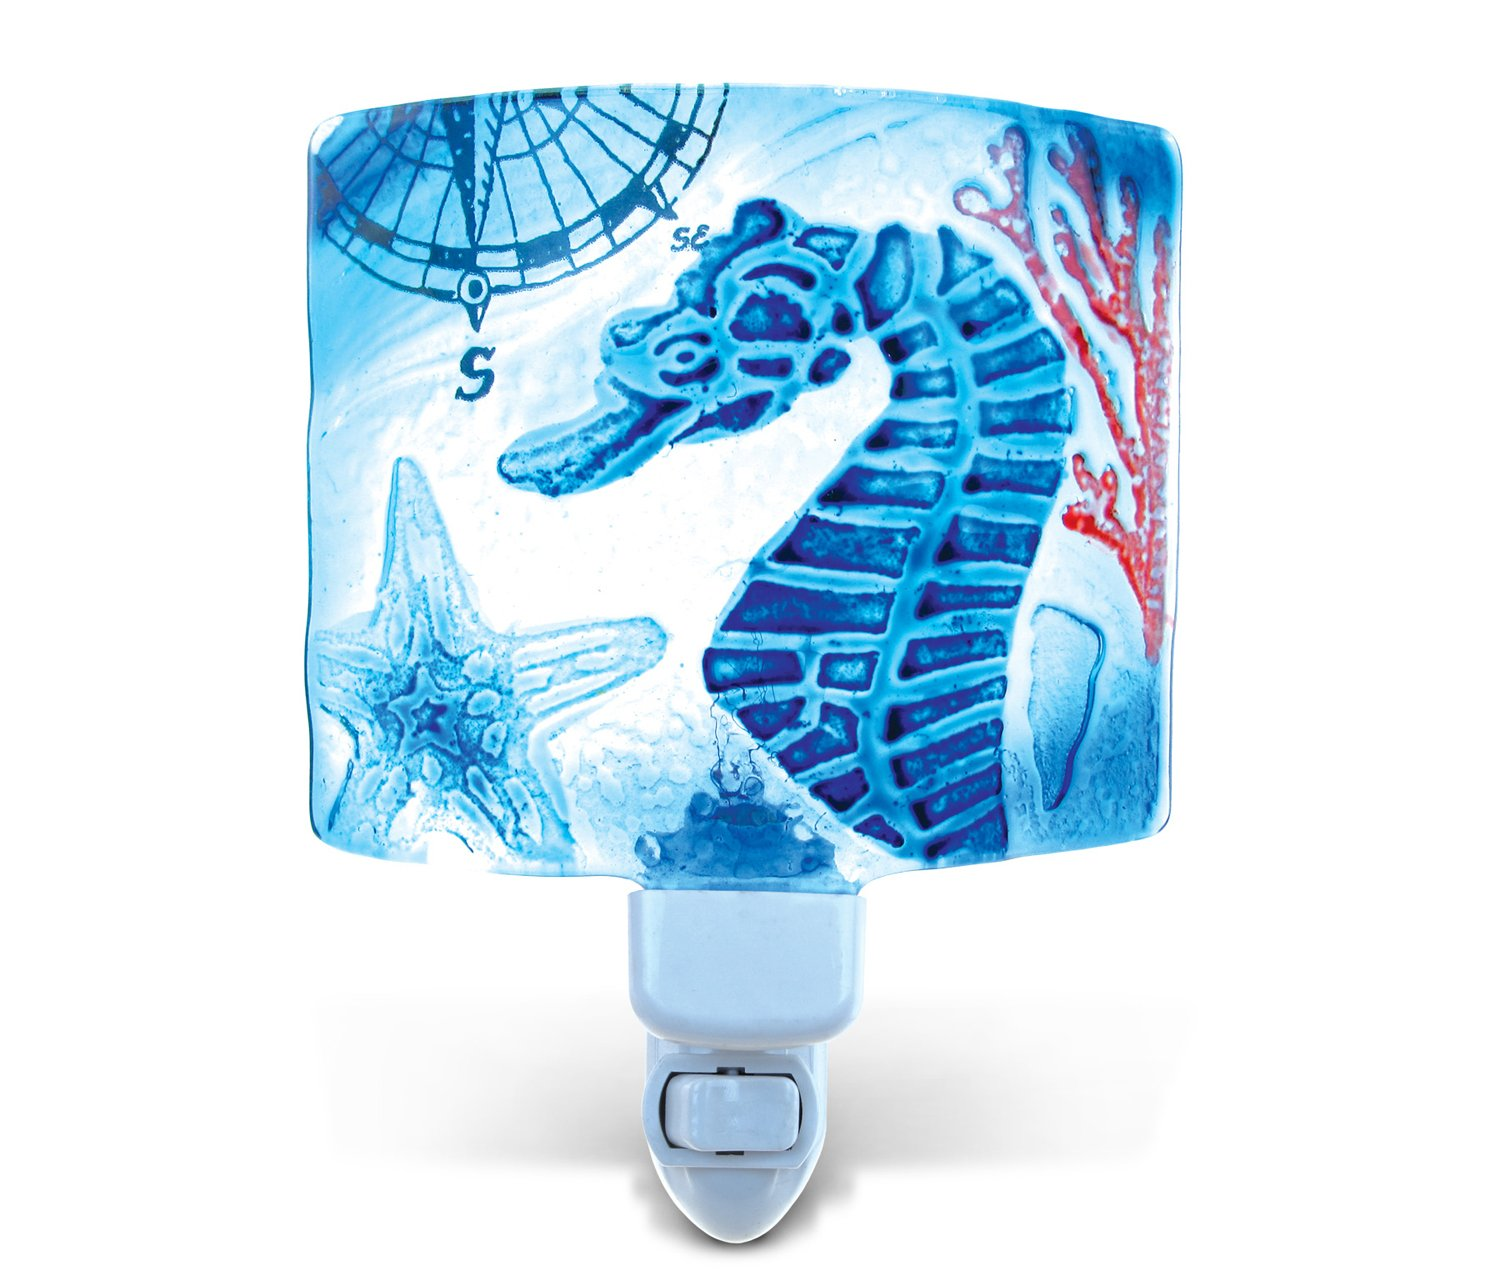 Puzzled Seahorse LED Night Light Hand Painted Glass Art Decorative Home Decor Portable Easy Plug & Switch Novelty Lamp Nautical Animal Ocean Life Theme Unique Design 4.5 x 6 Inches